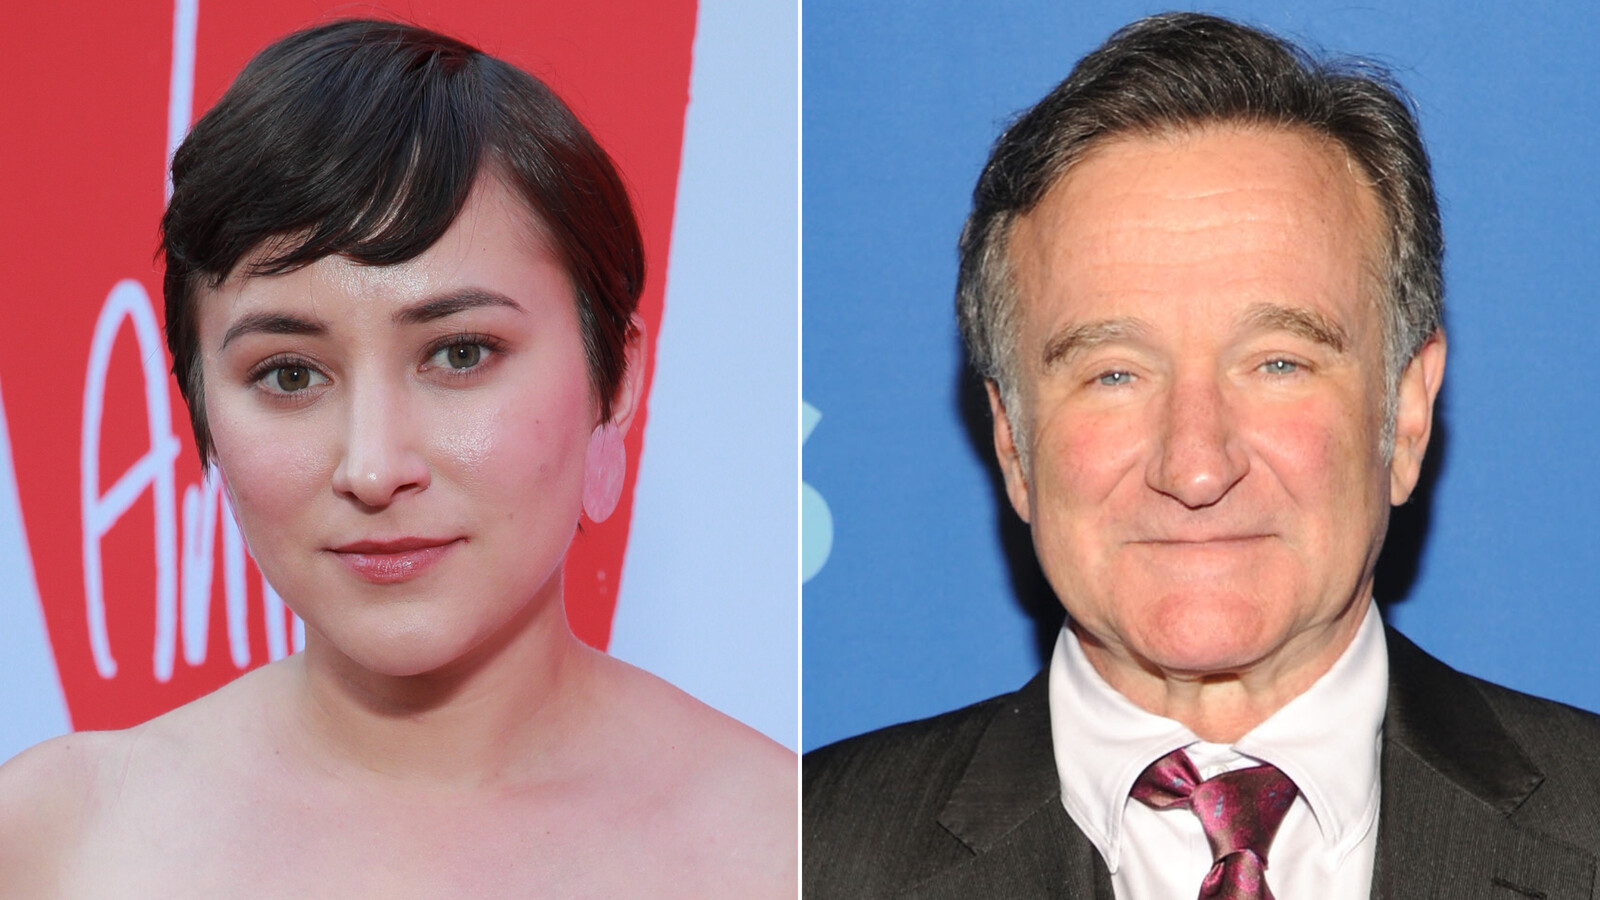 Zelda Williams wants people to stop sending Robin Williams impersonation video to her